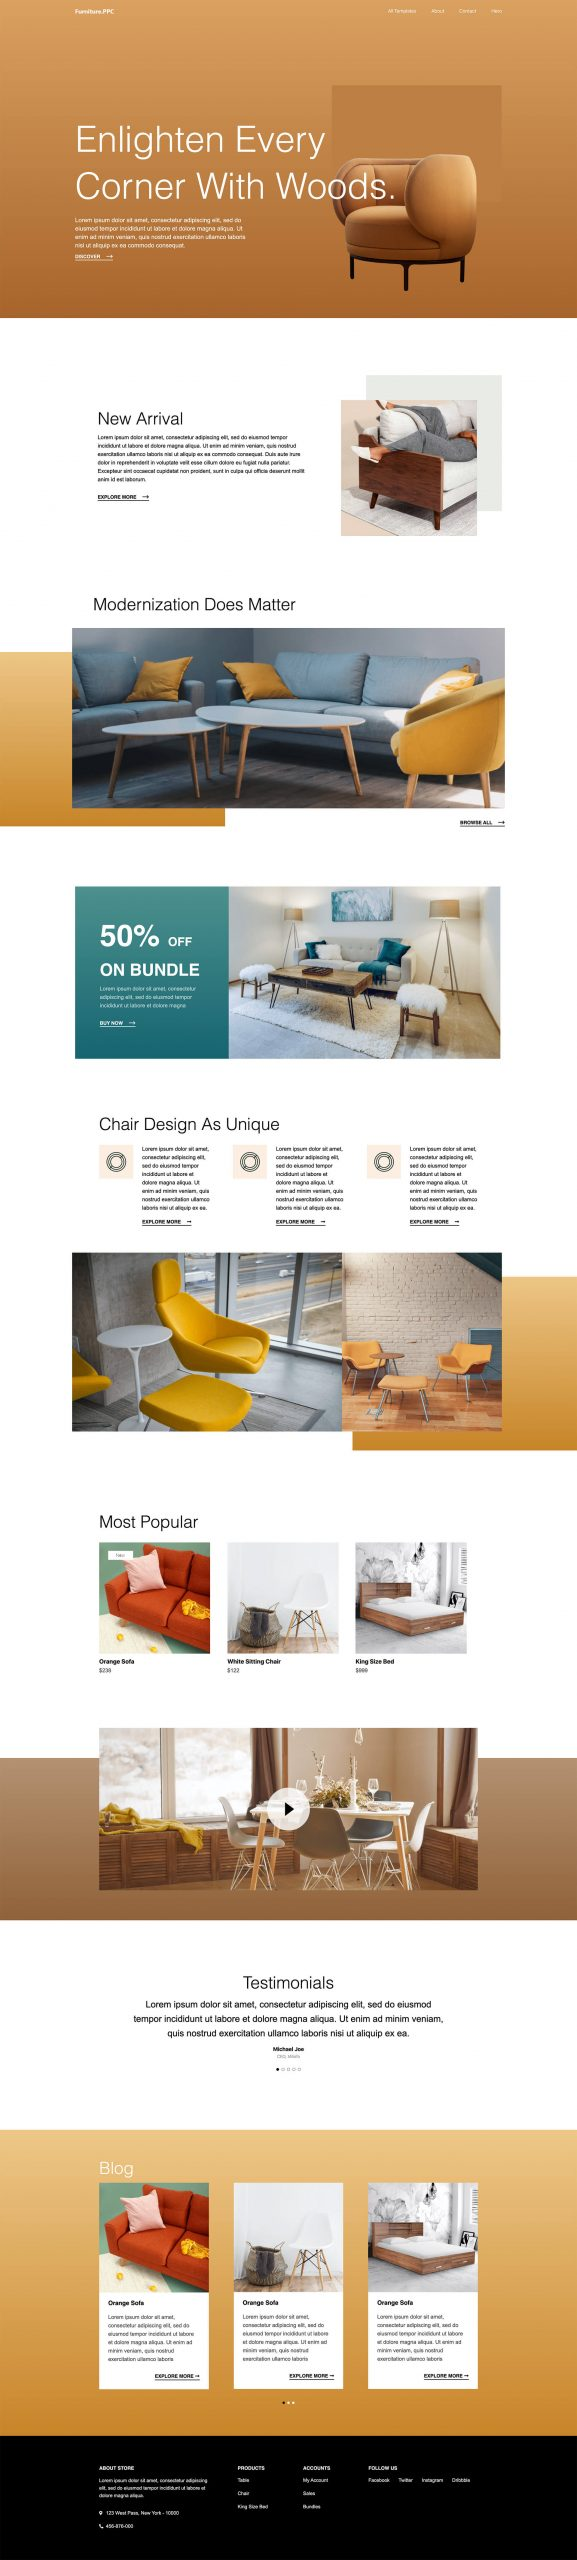 PowerPack Elements Template - Furniture